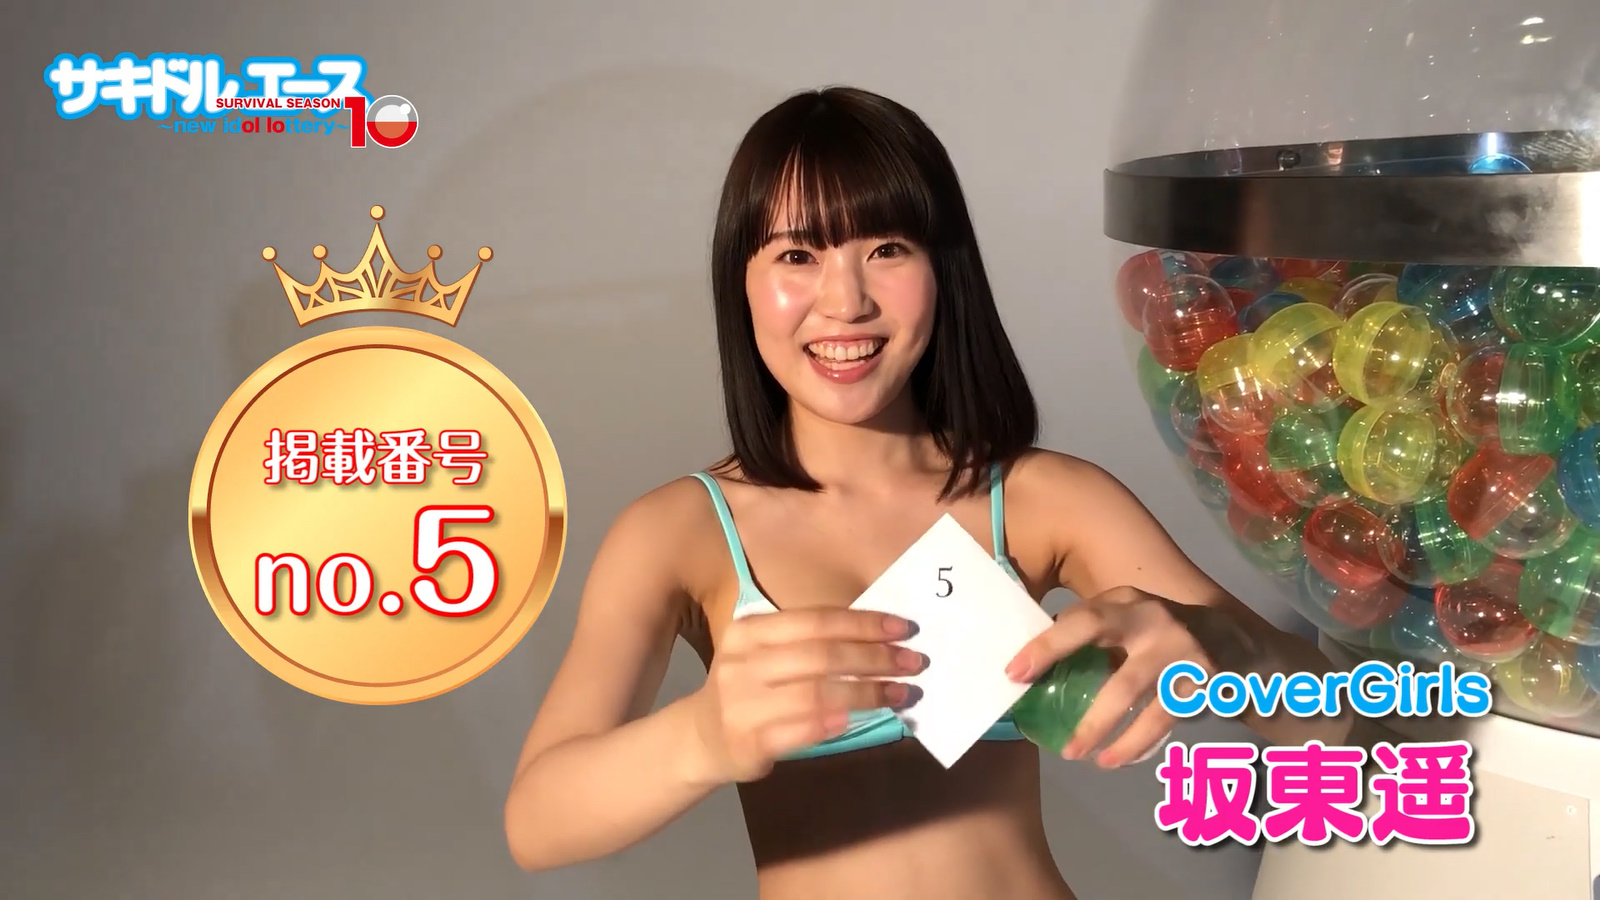 Sakidol Ace 10 Introduction Movie Capture of Swimsuit108